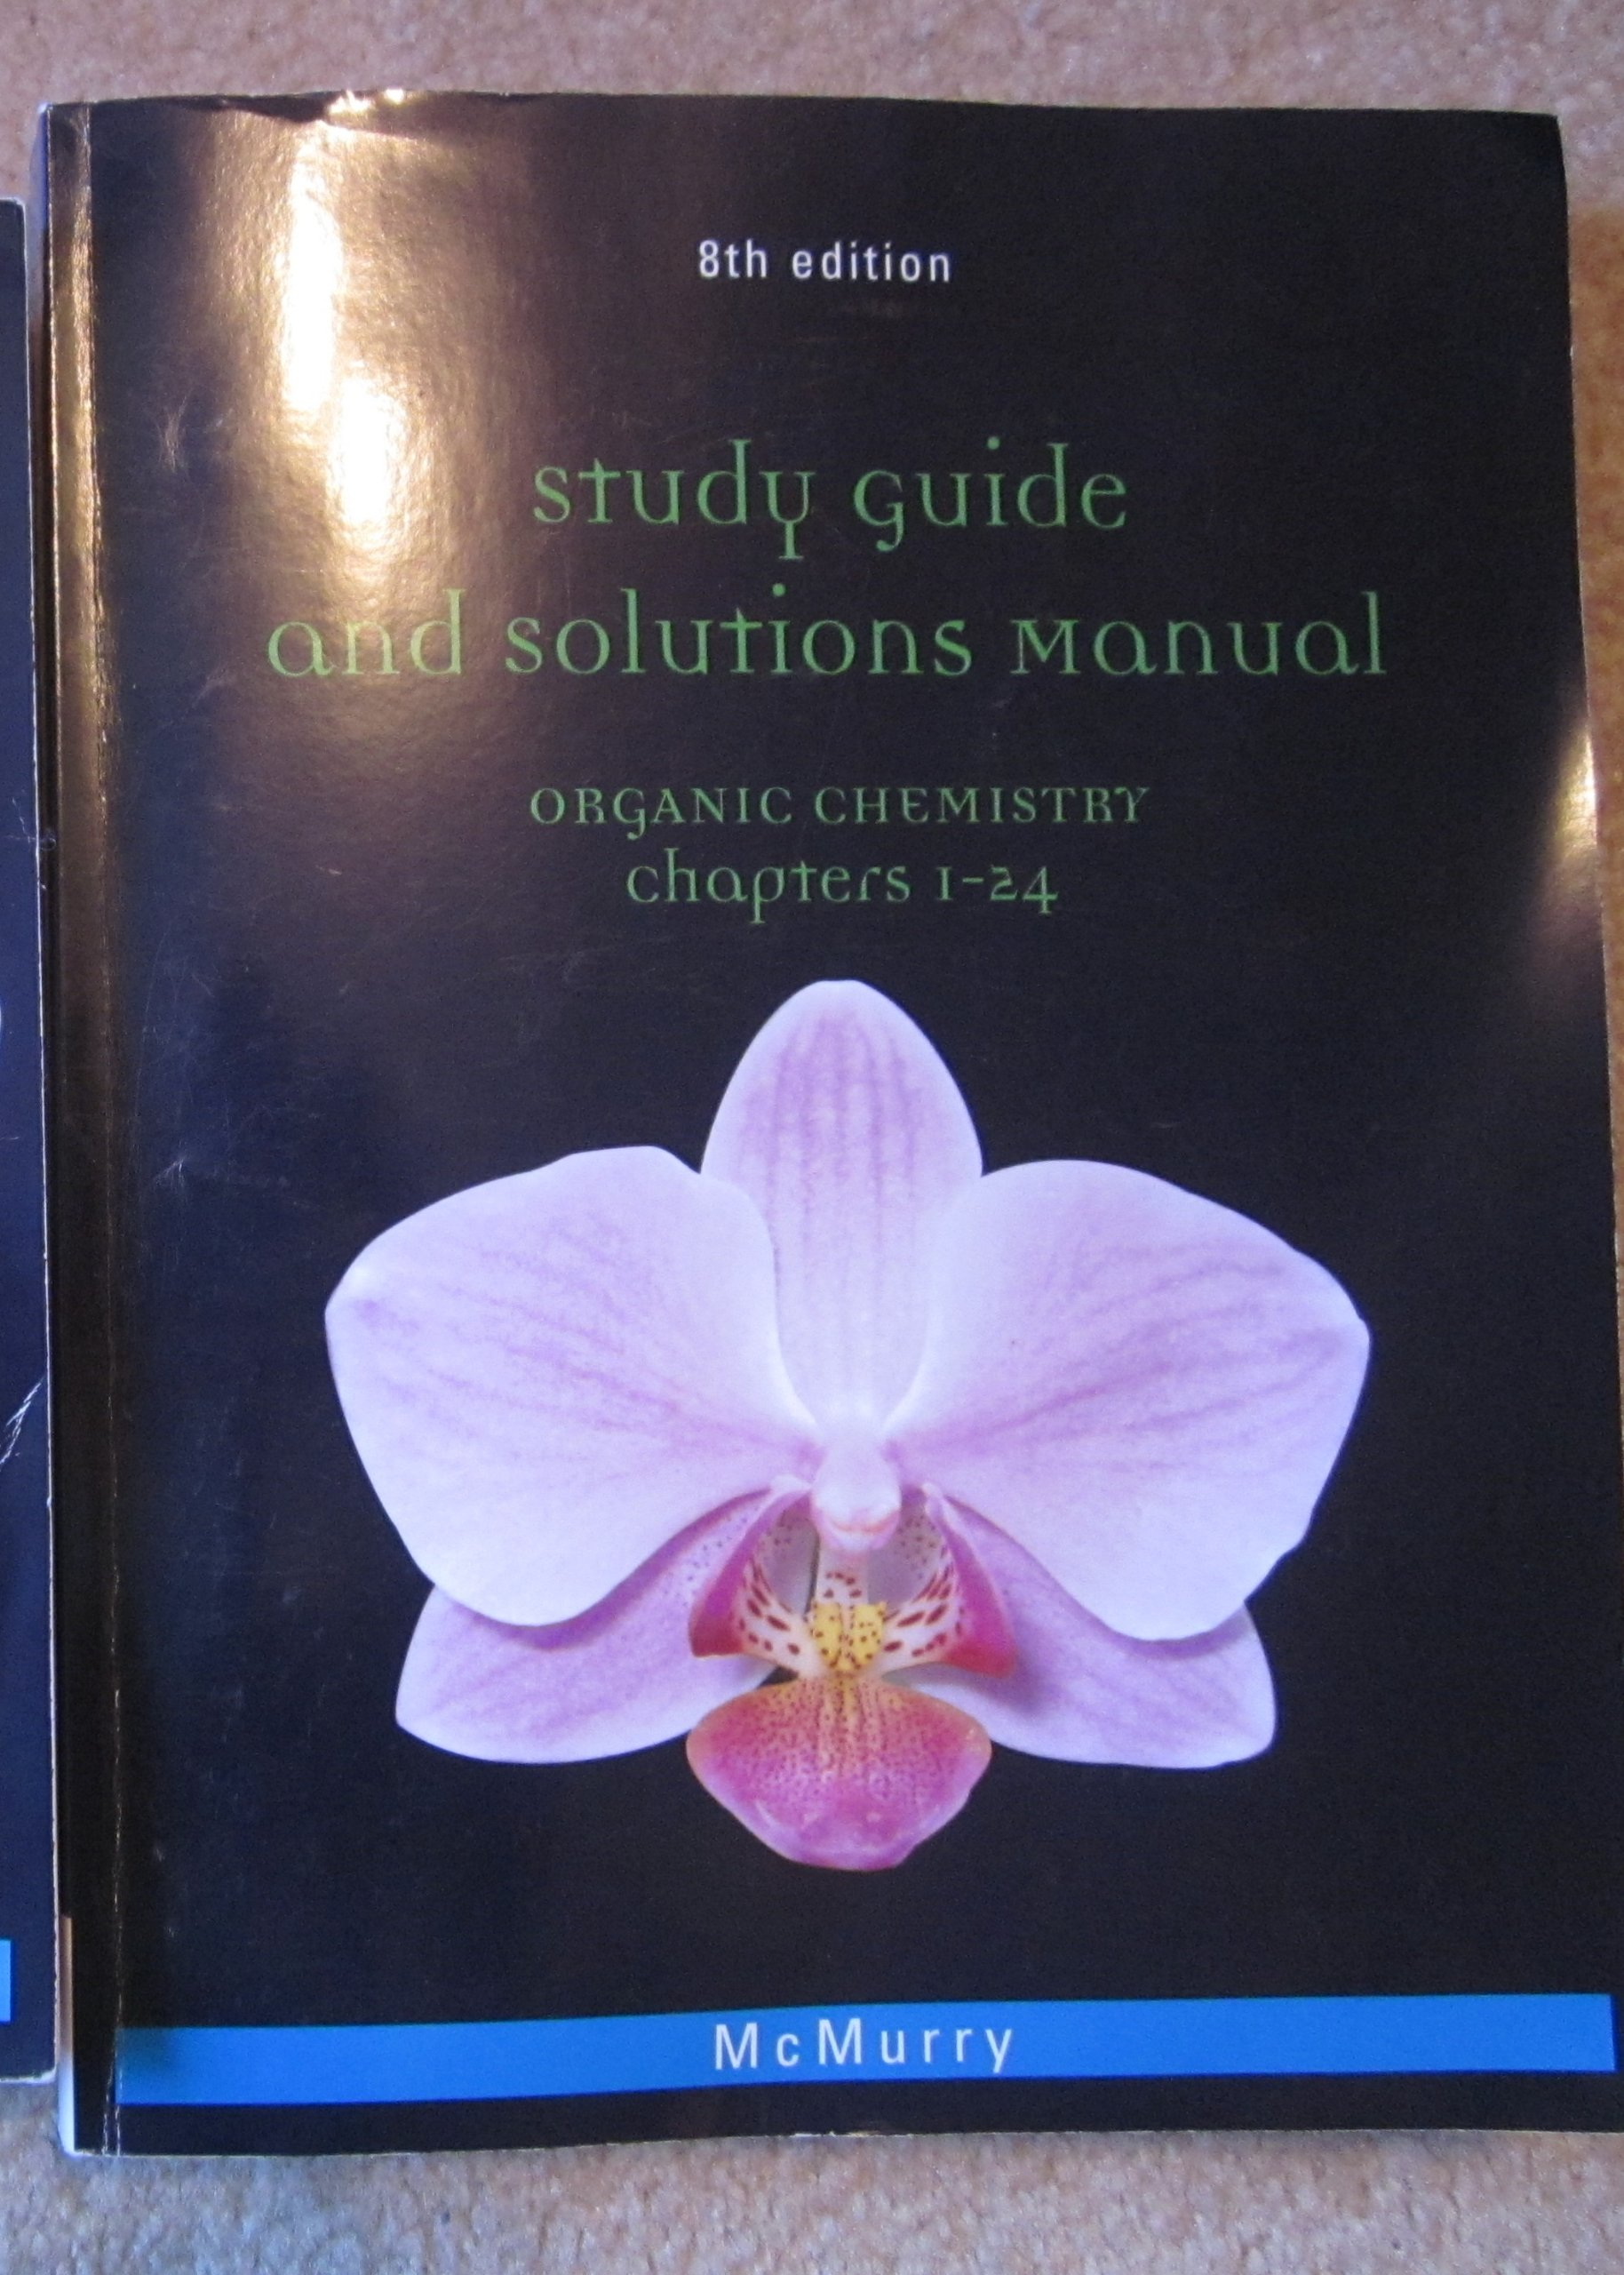 Organic Chemistry Ch. 1-24 Study Guide and Solutions Manual: John E McMurry:  9781133151647: Amazon.com: Books